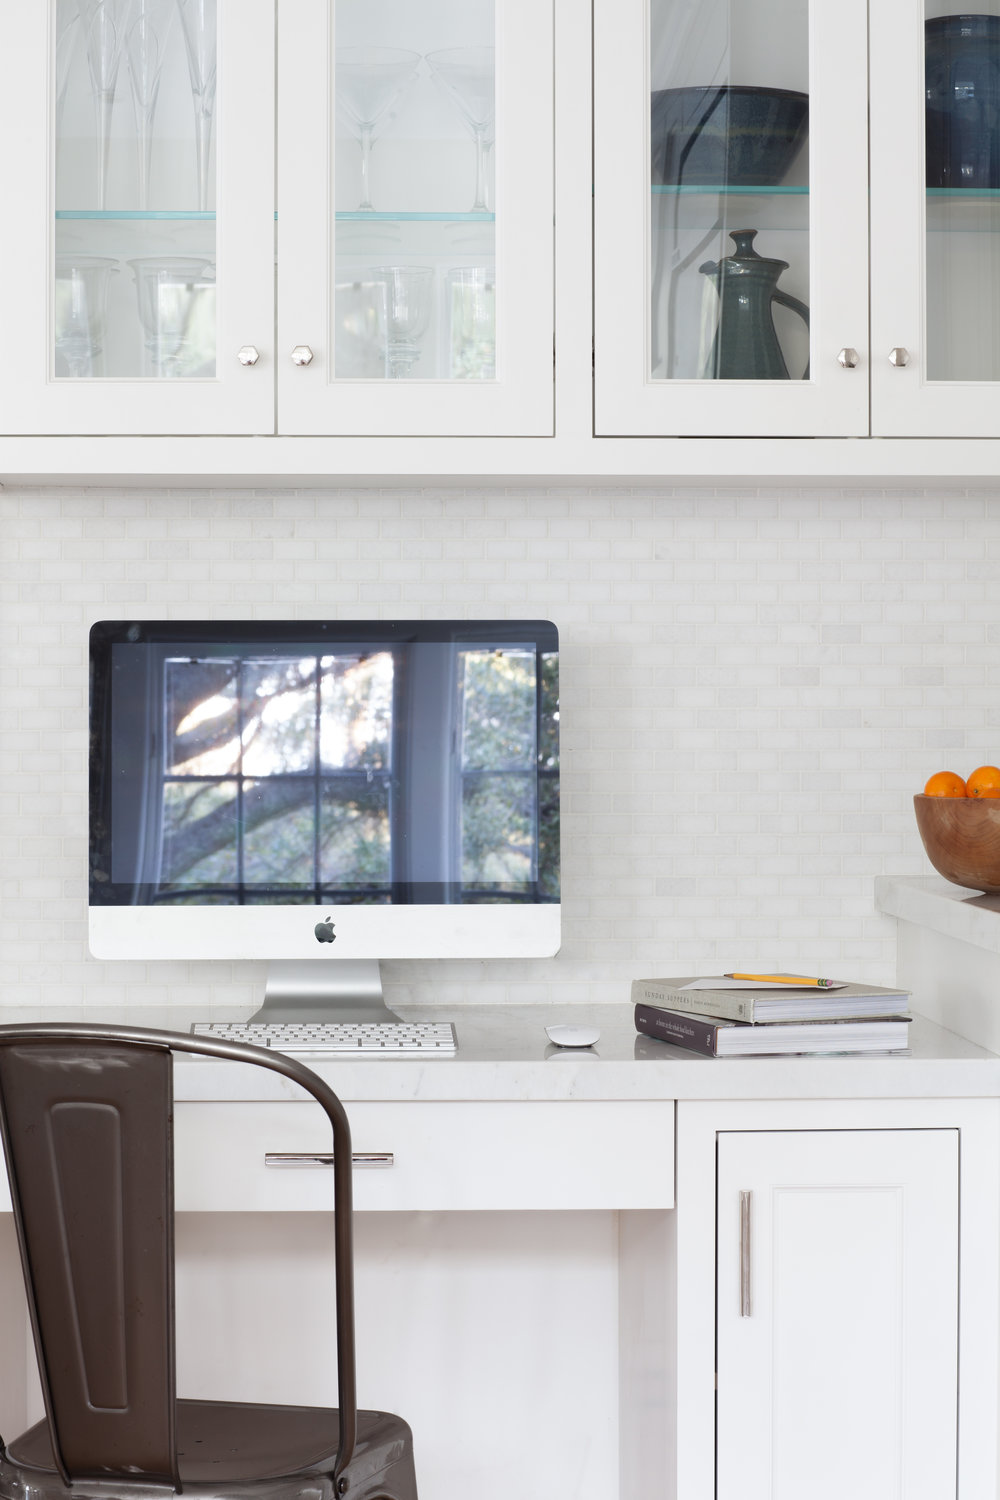 megan bachmann interiors white kitchen desk.jpg